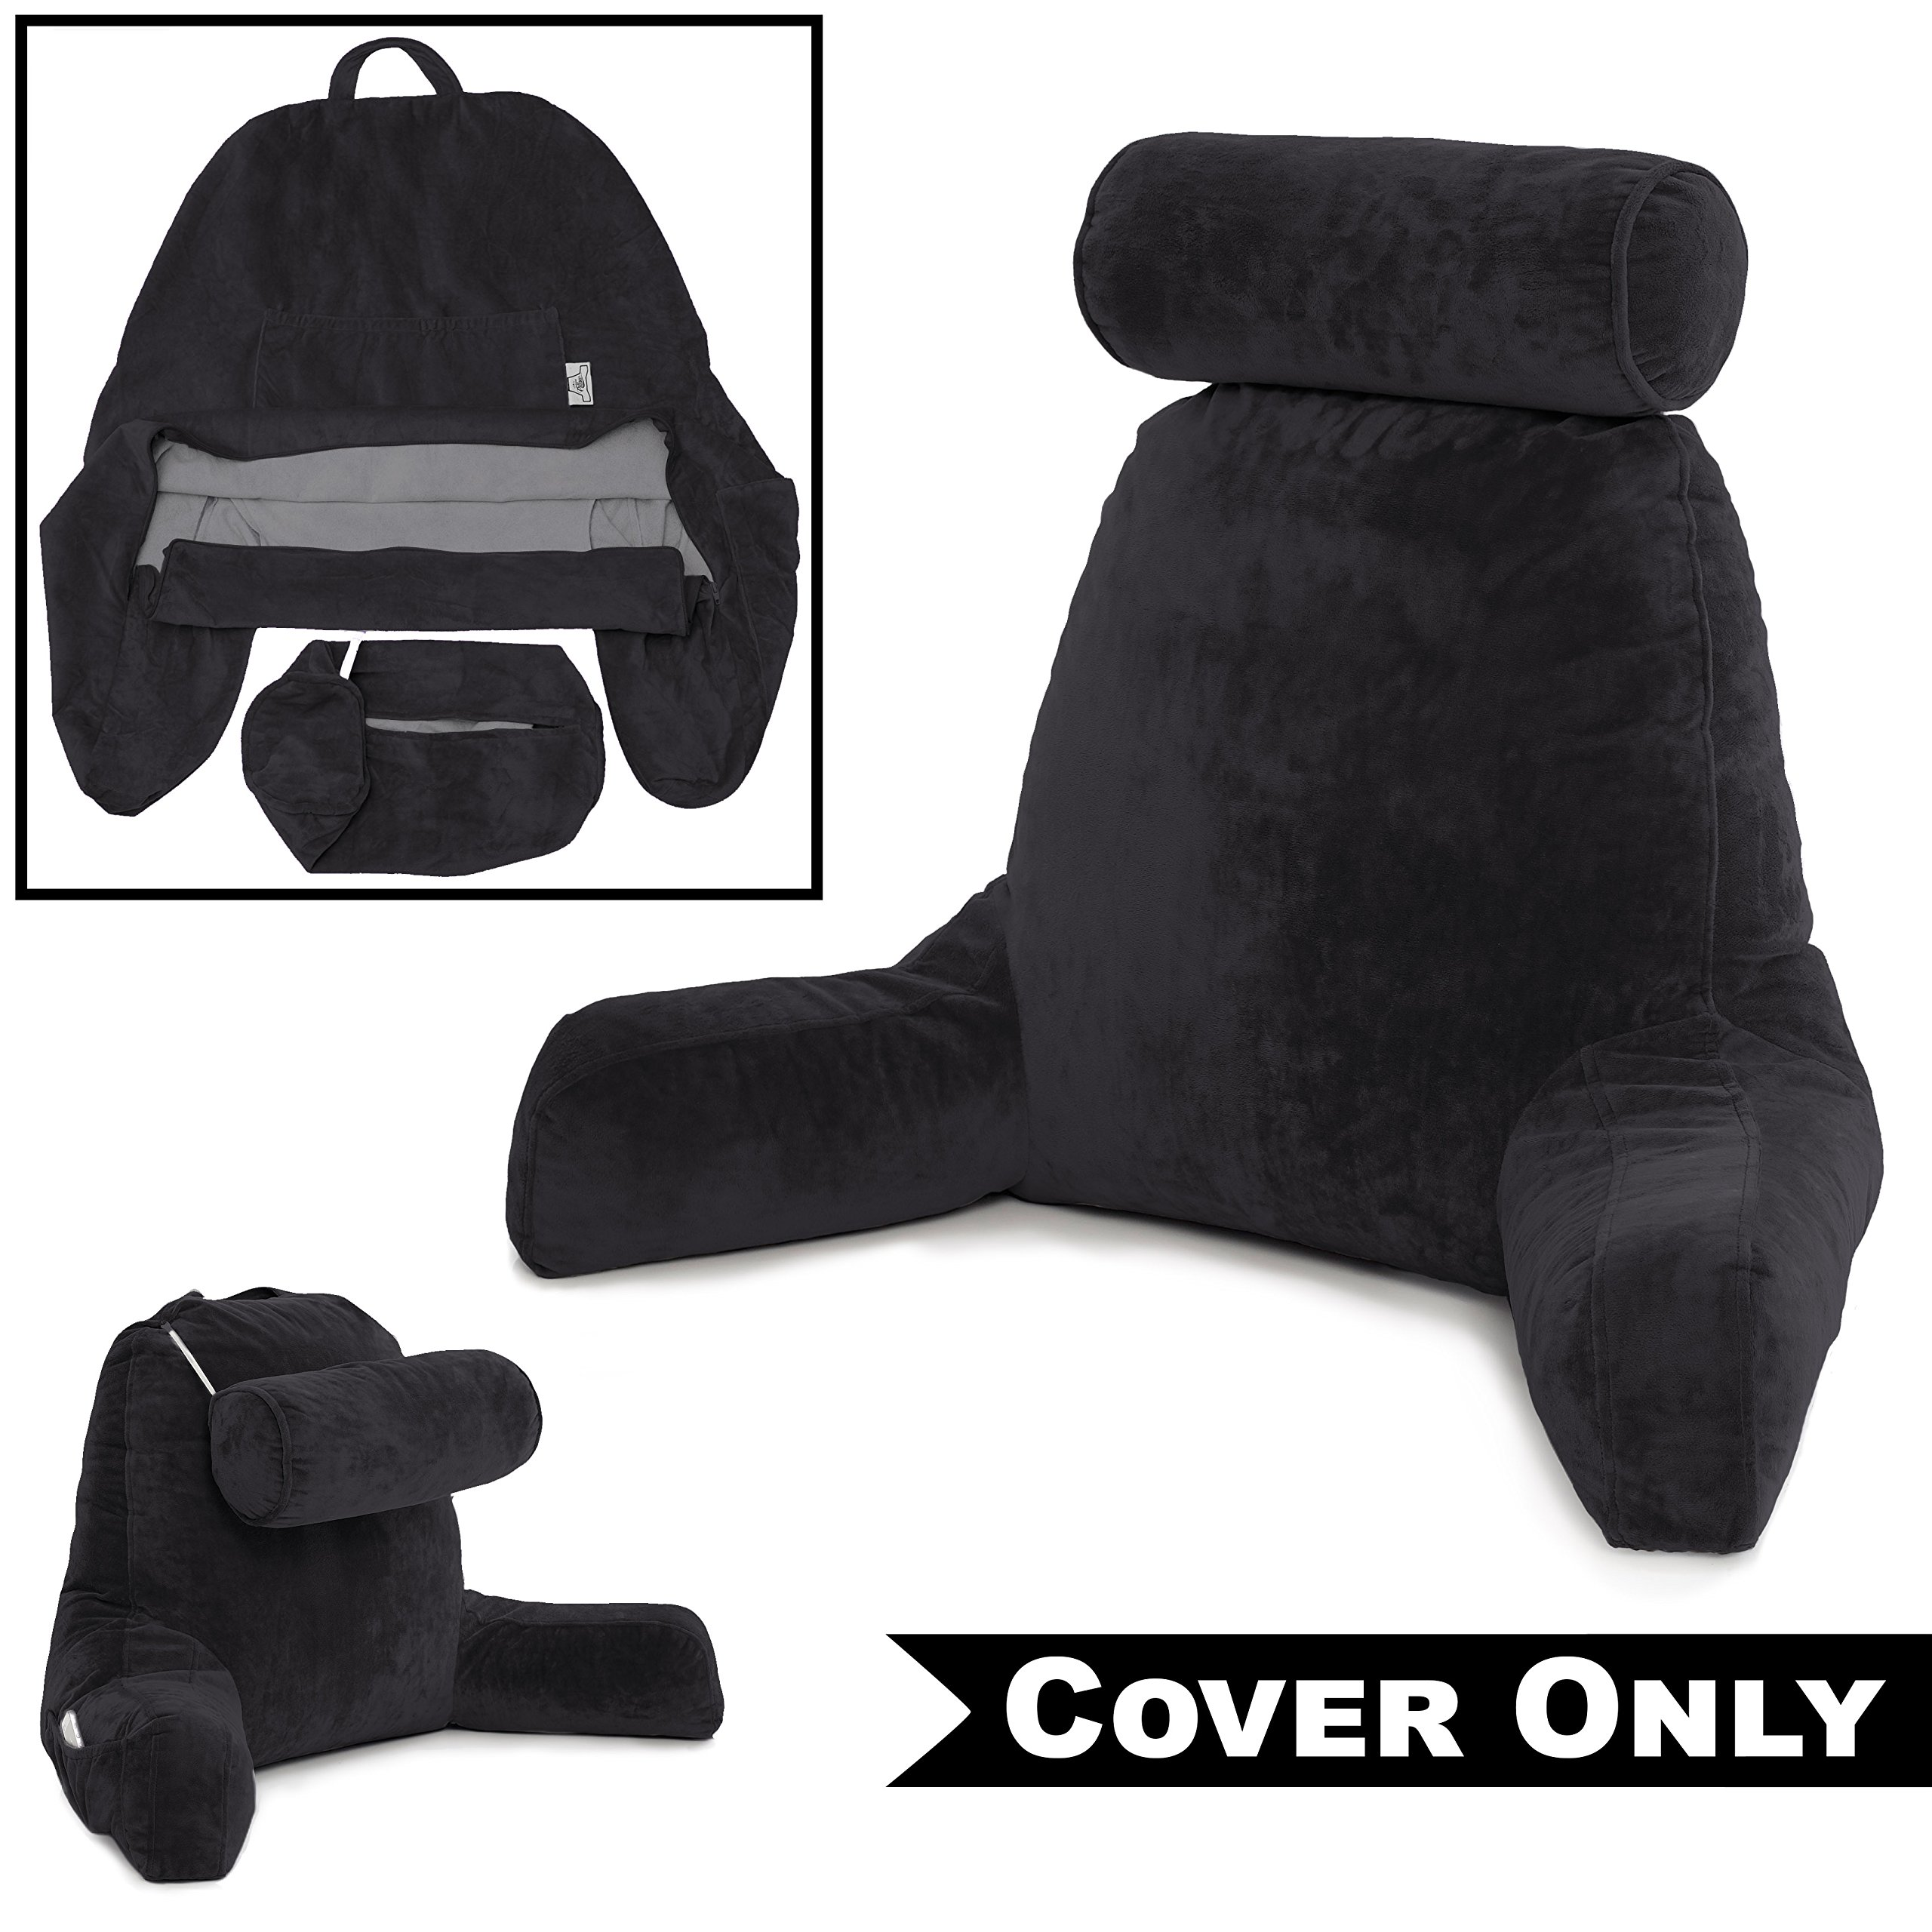 Husband Pillow Black COVER ONLY - For the Bedrest Cover Set - Support Bed Backrest Covers, Micro Plush Cover Including Detachable Neck Roll Pillow Cover